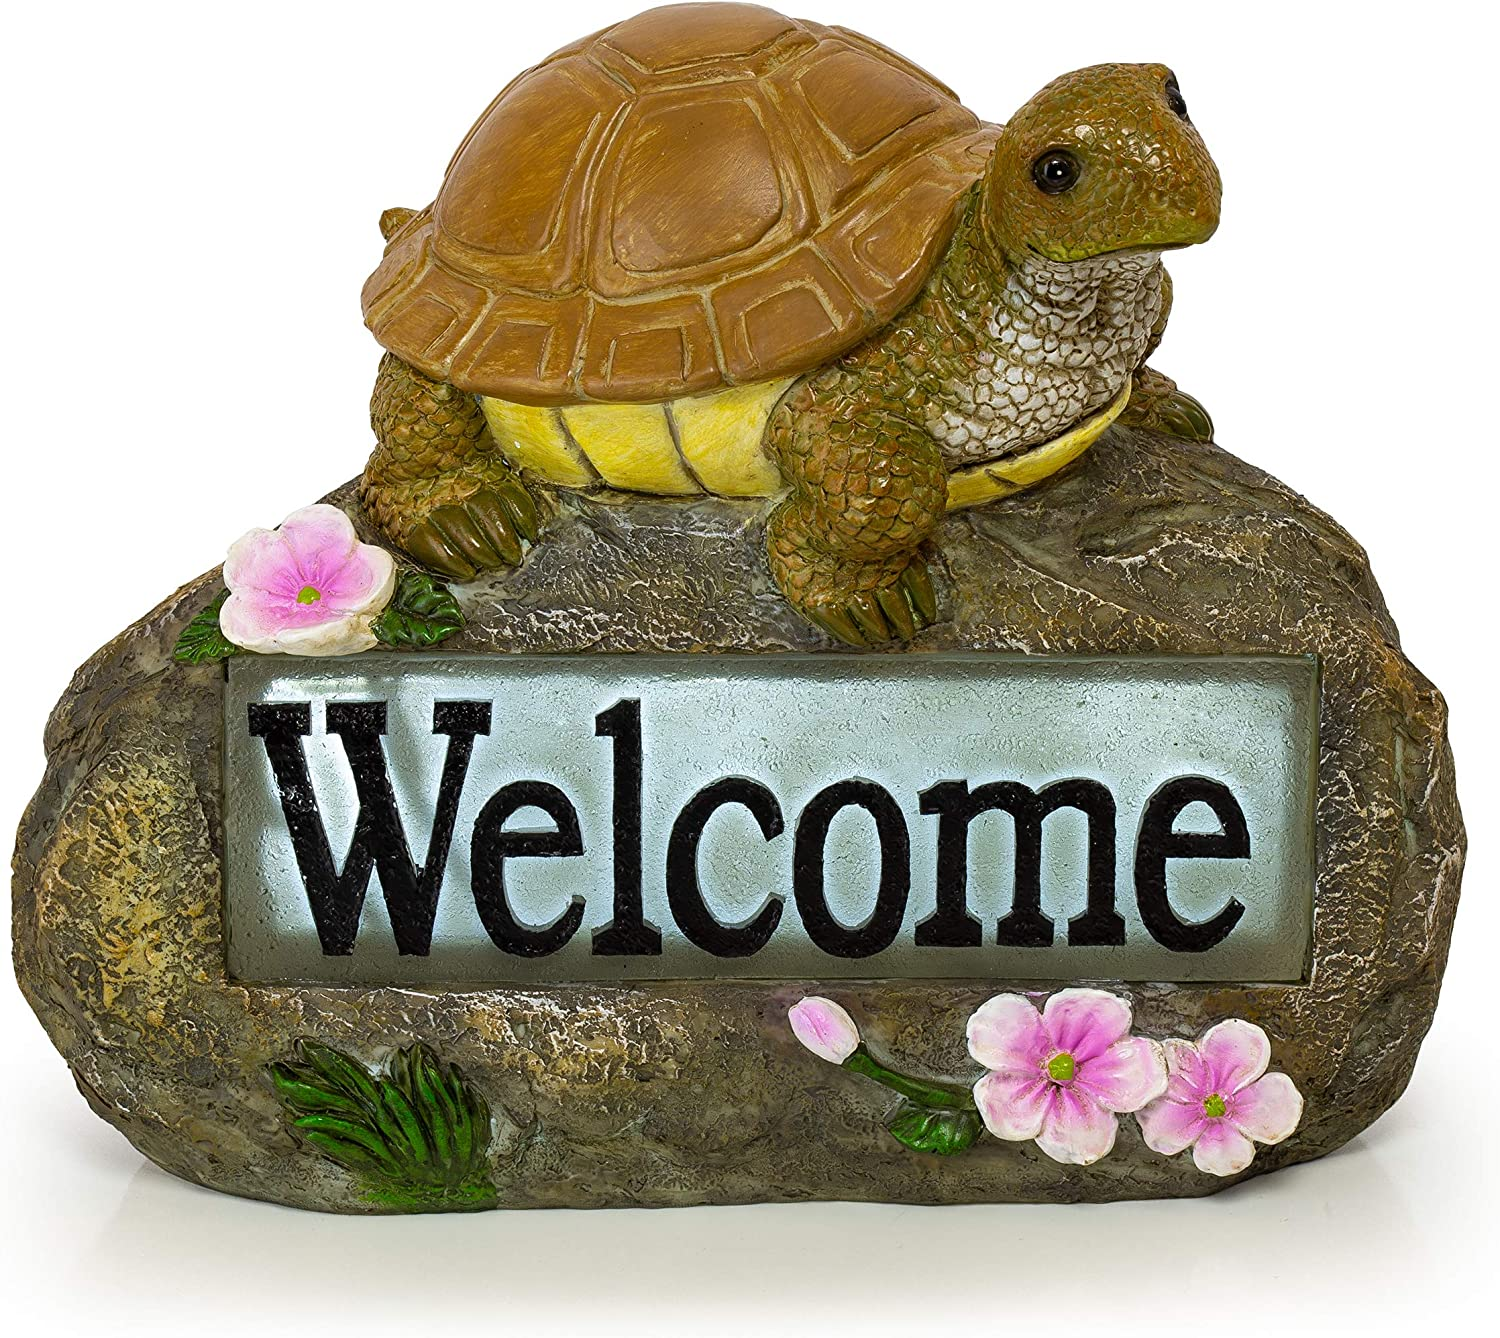 Welcome Turtle Solar Powered Branded goods LED Outdoor Garden Light Low price Decor